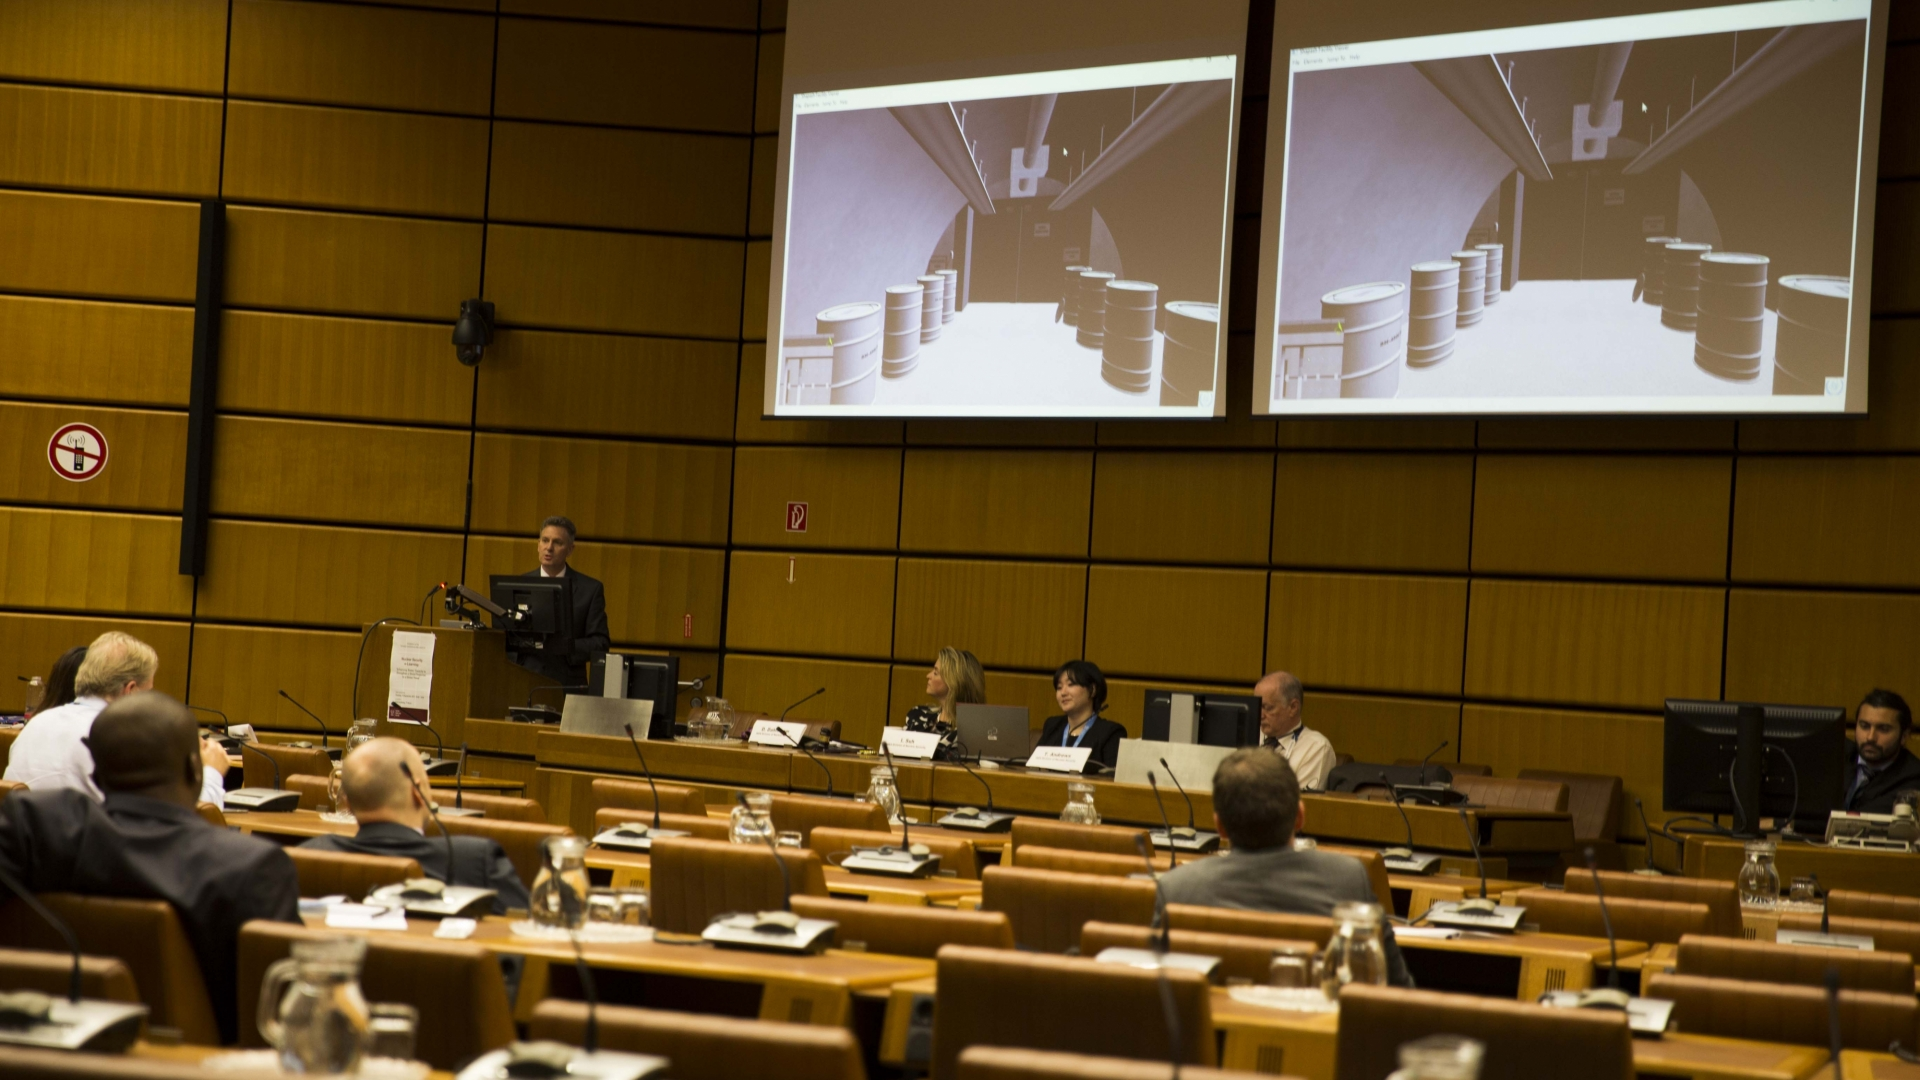 The virtual world of Shapash Nuclear Research Institute (SNRI) was  presented today on the sidelines of the 61st IAEA General Conference.